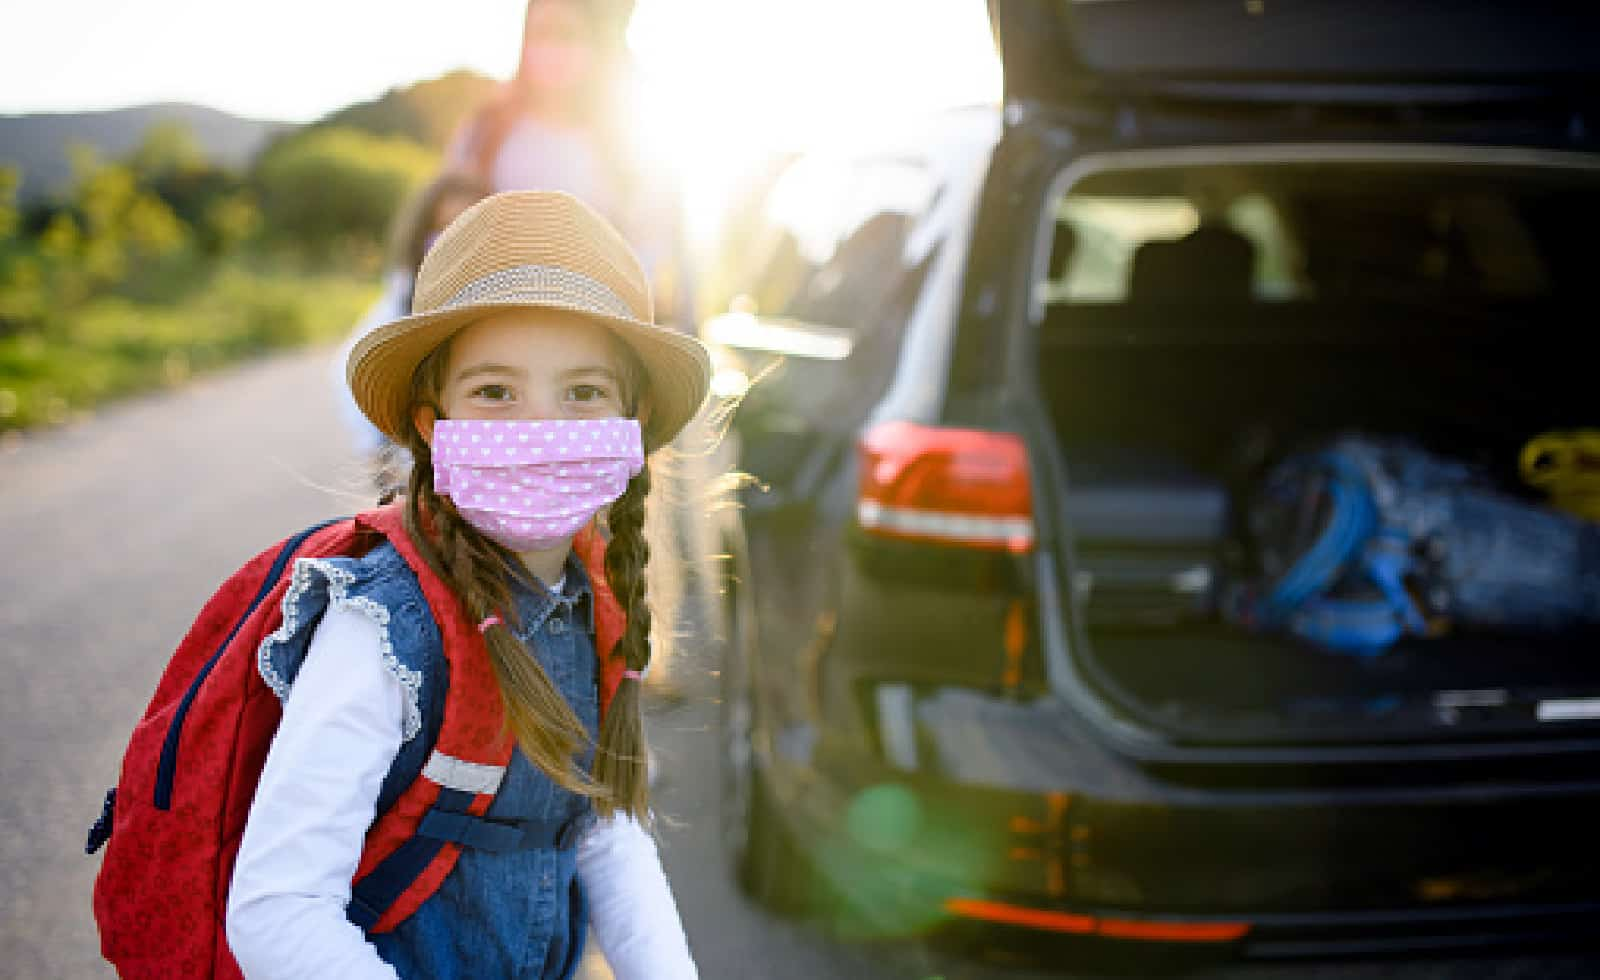 Front view of small girl with family on trip outdoors in nature, wearing face masks